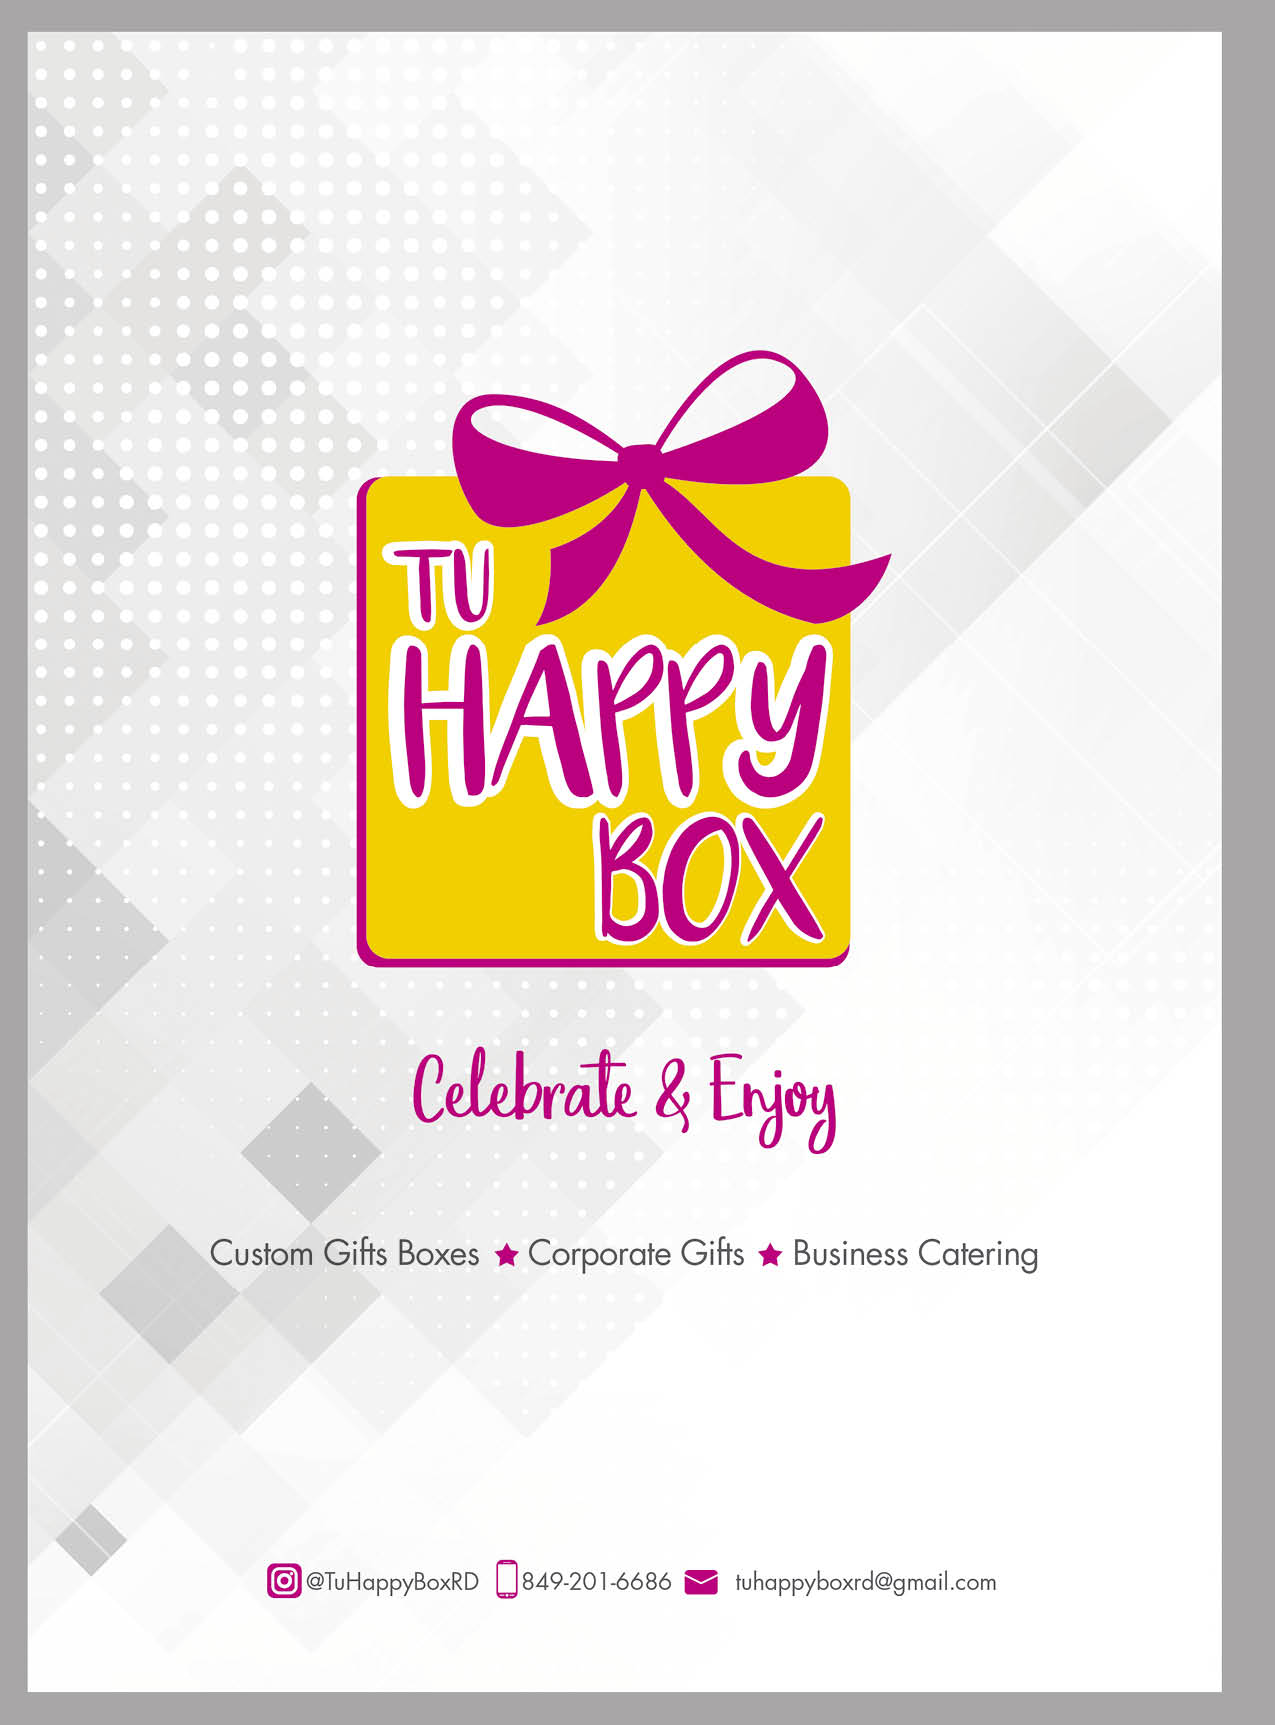 Tu Happy Box